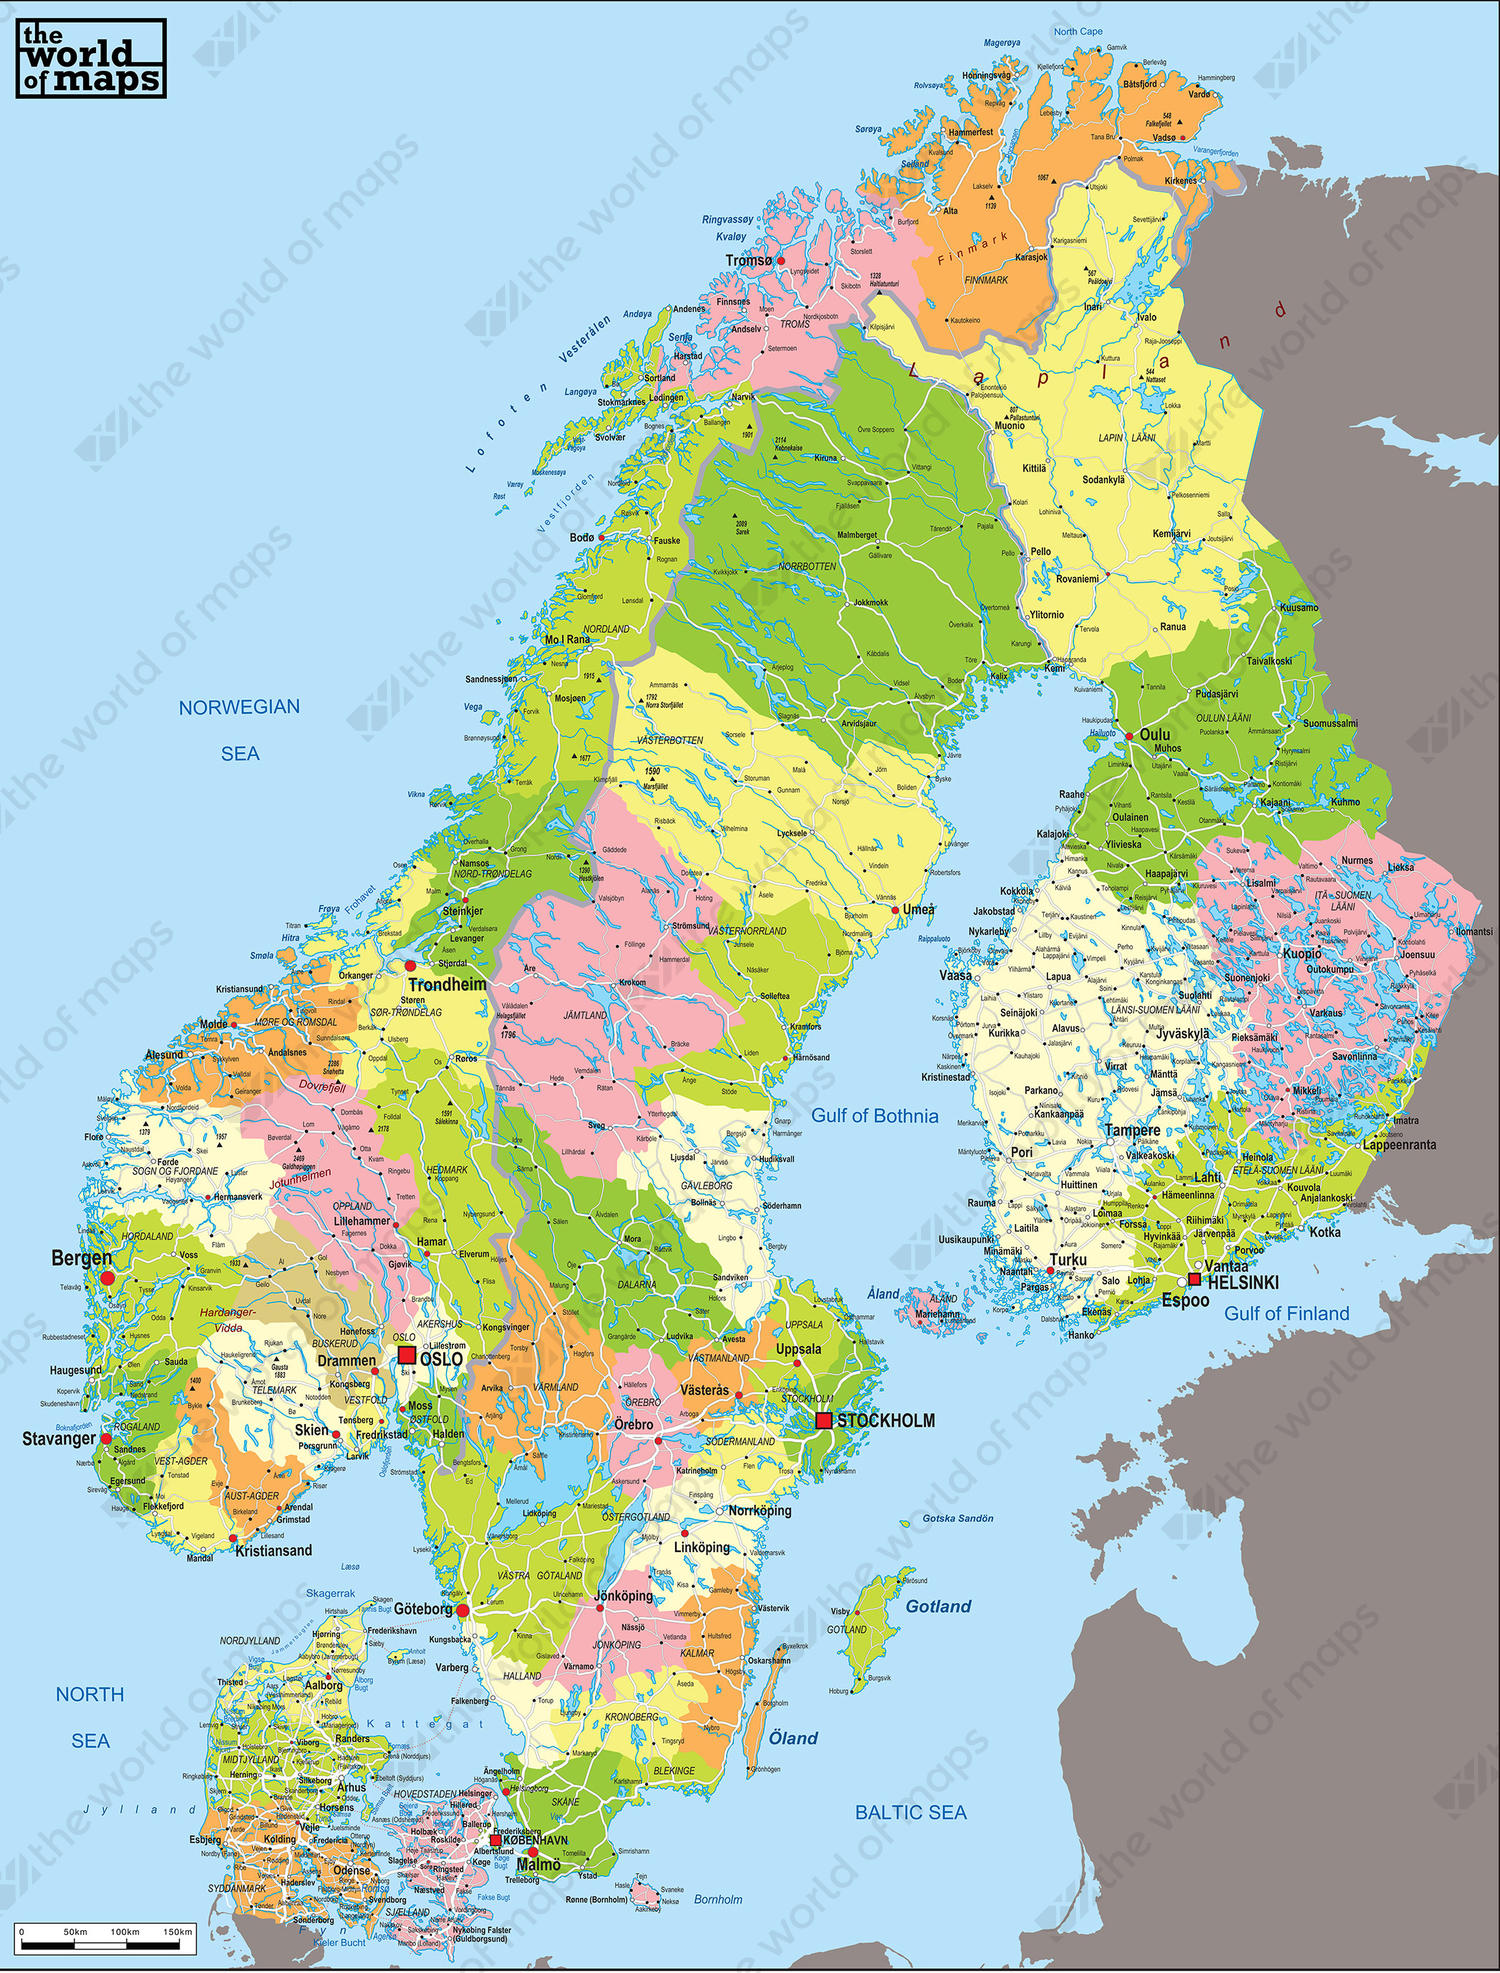 Digital Political Map Scandinavia 53 The World of Mapscom